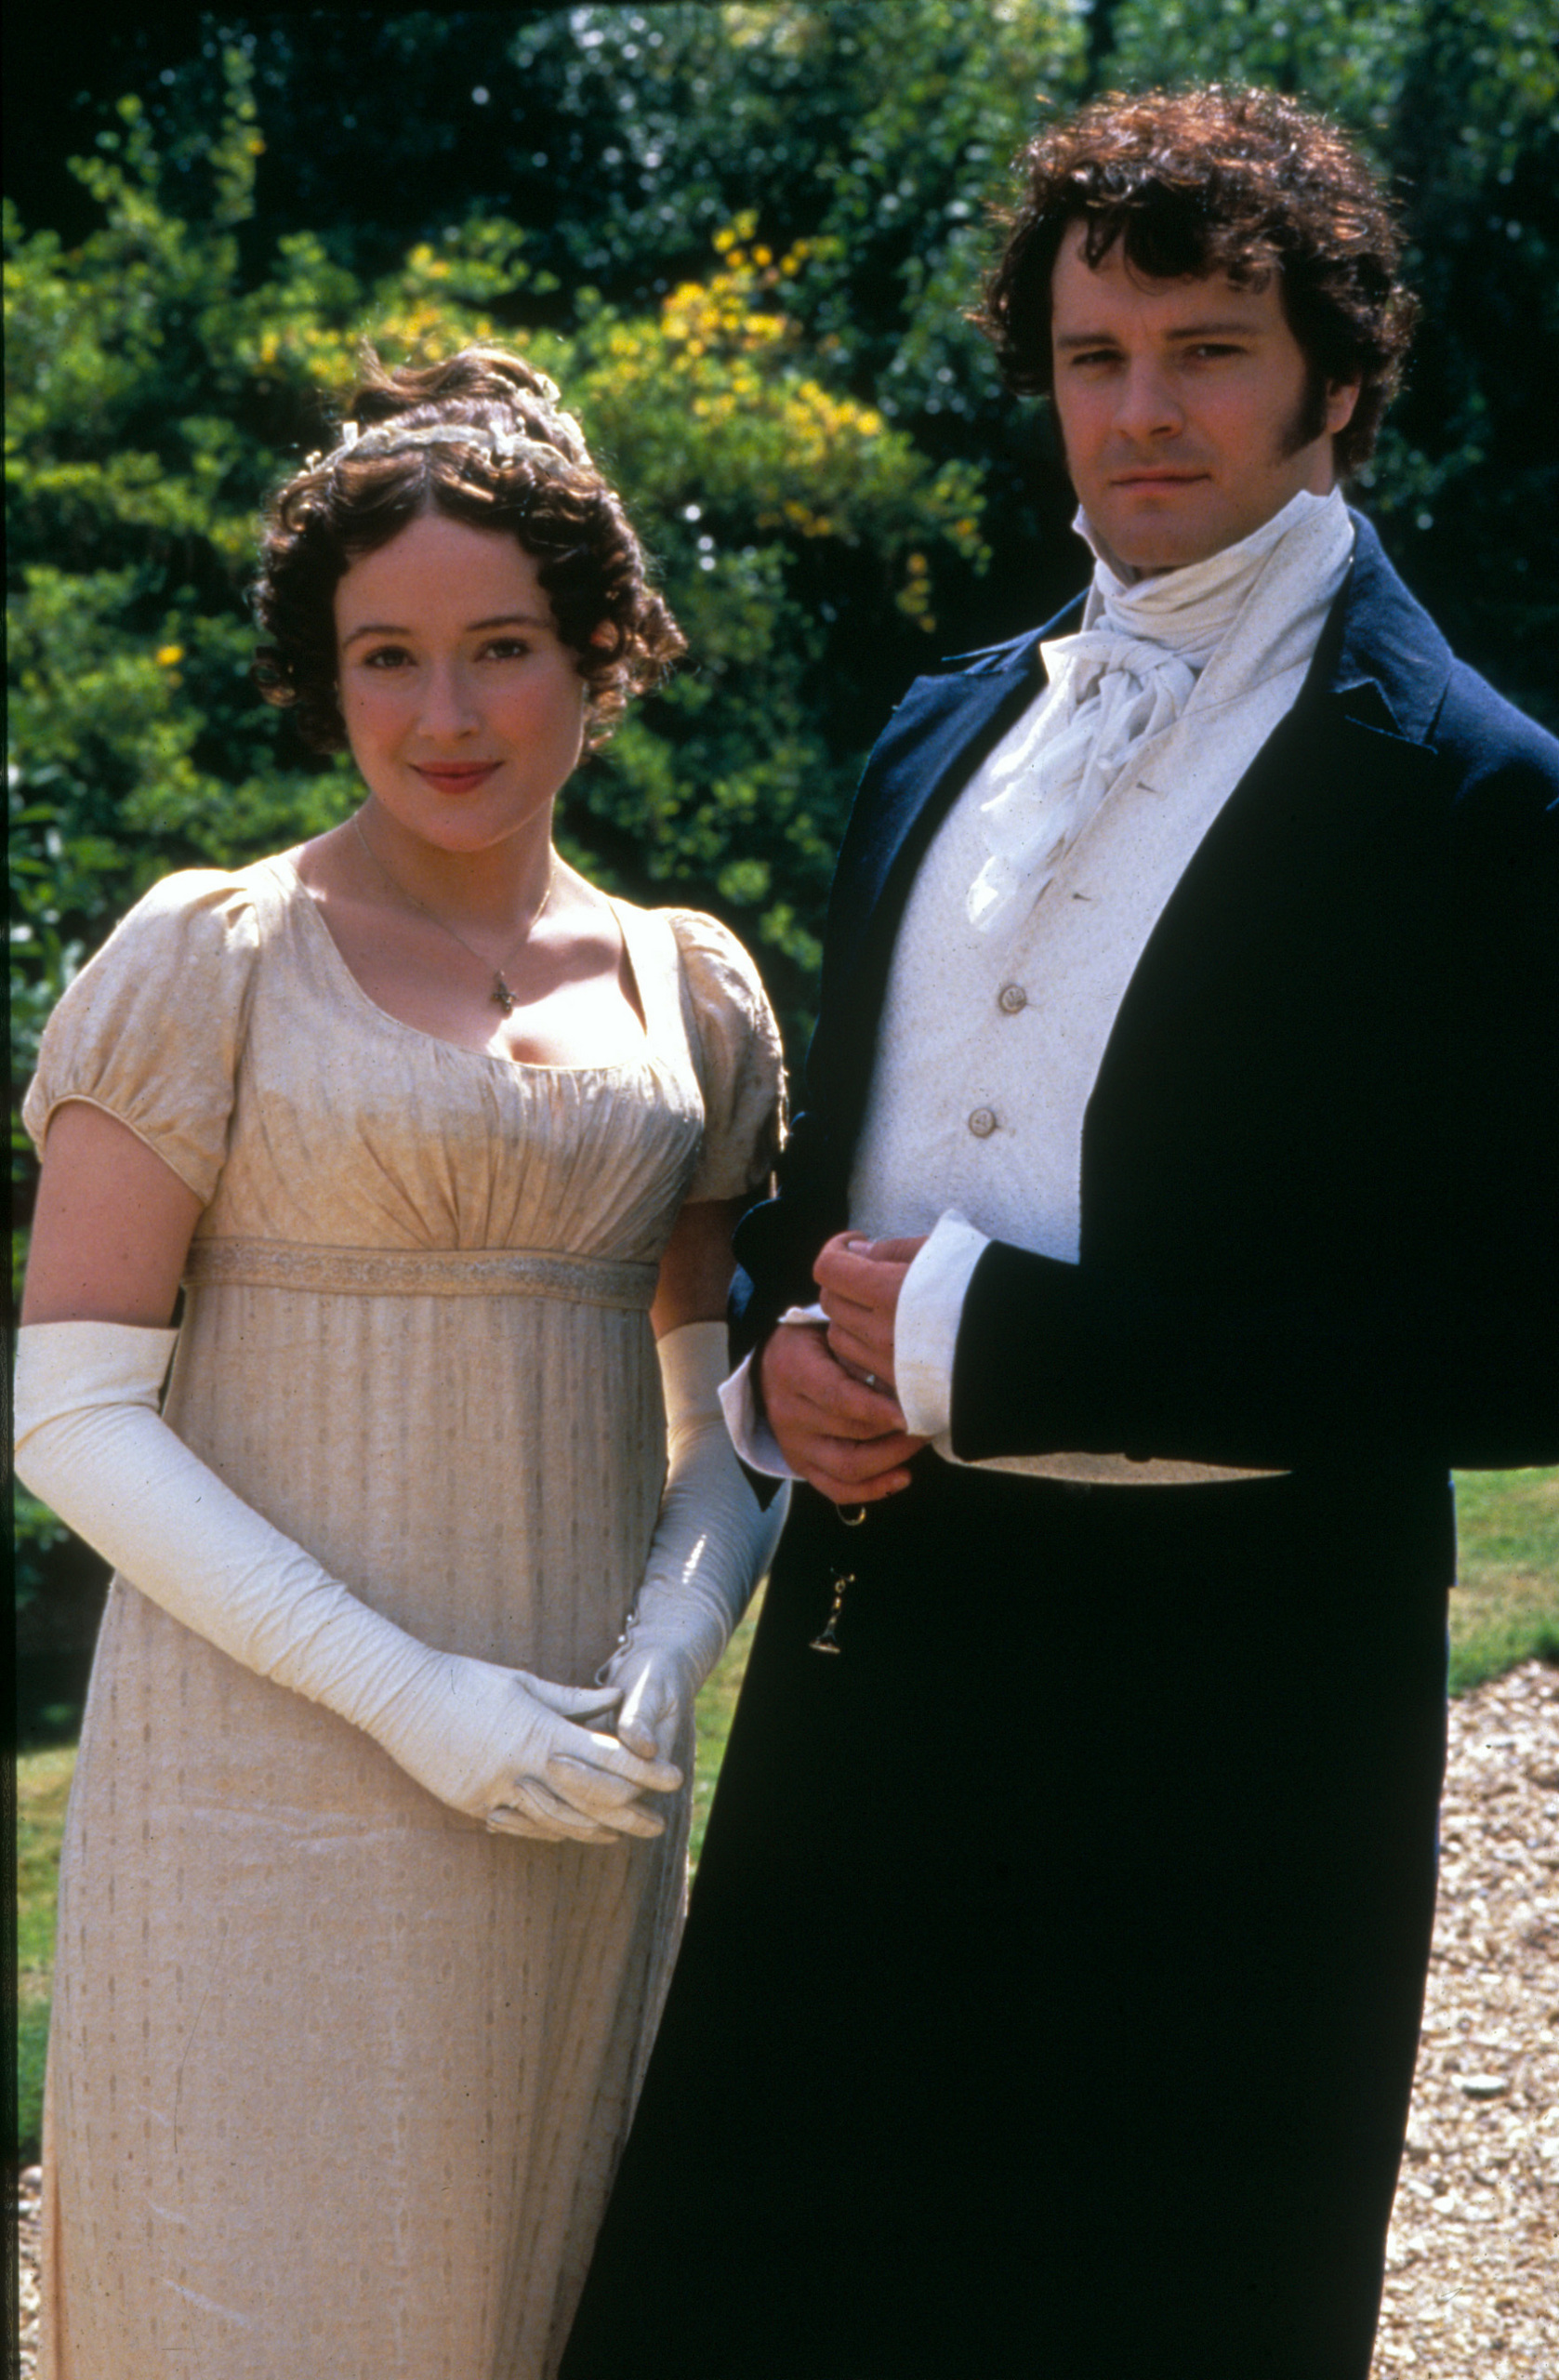 the theme of courtship in pride and prejudice and great expectations